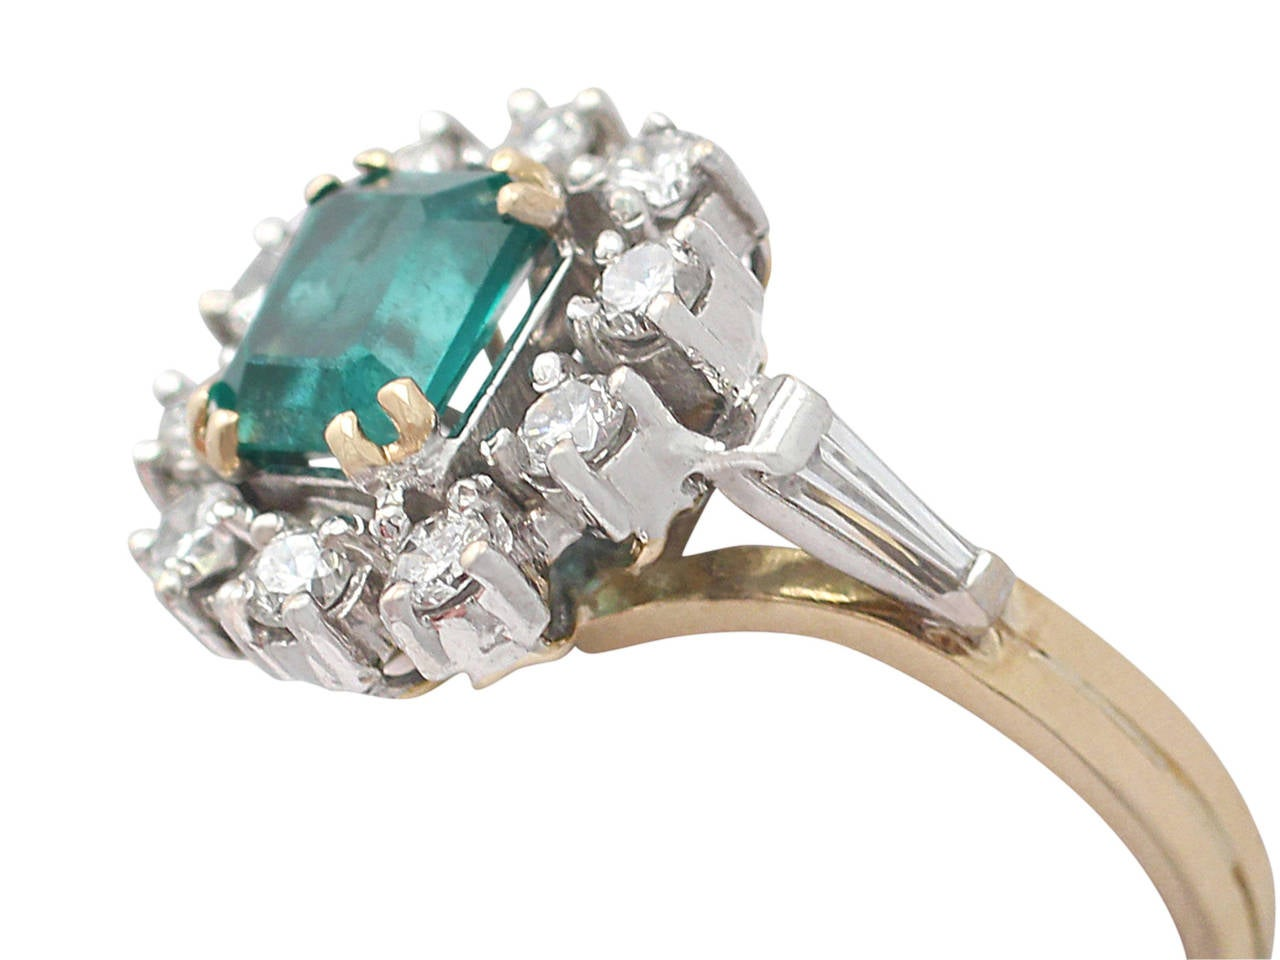 0.84Ct Emerald and 0.50Ct Diamond, 18k Yellow Gold Cluster Ring, Vintage In Excellent Condition For Sale In Jesmond, Newcastle Upon Tyne